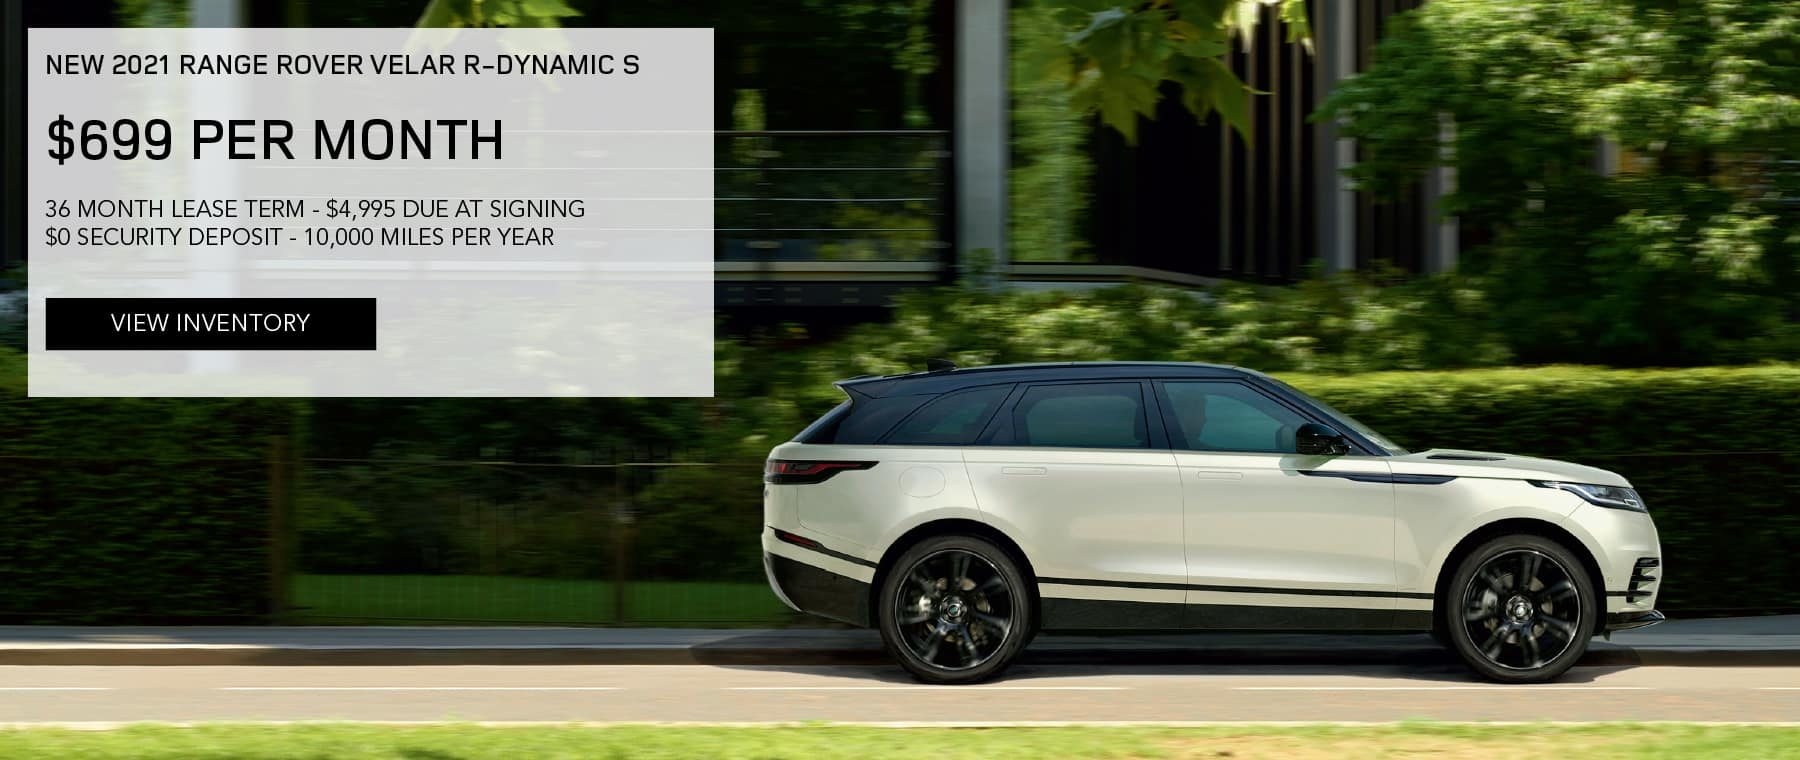 NEW 2021 RANGE ROVER VELAR R-DYNAMIC S. $699 PER MONTH. 36 MONTH LEASE TERM. $4,995 CASH DUE AT SIGNING. $0 SECURITY DEPOSIT. 10,000 MILES PER YEAR. EXCLUDES RETAILER FEES, TAXES, TITLE AND REGISTRATION FEES, PROCESSING FEE AND ANY EMISSION TESTING CHARGE. ENDS 6/30/2021. VIEW INVENTORY. SILVER RANGE ROVER VELAR PARKED IN CITY.